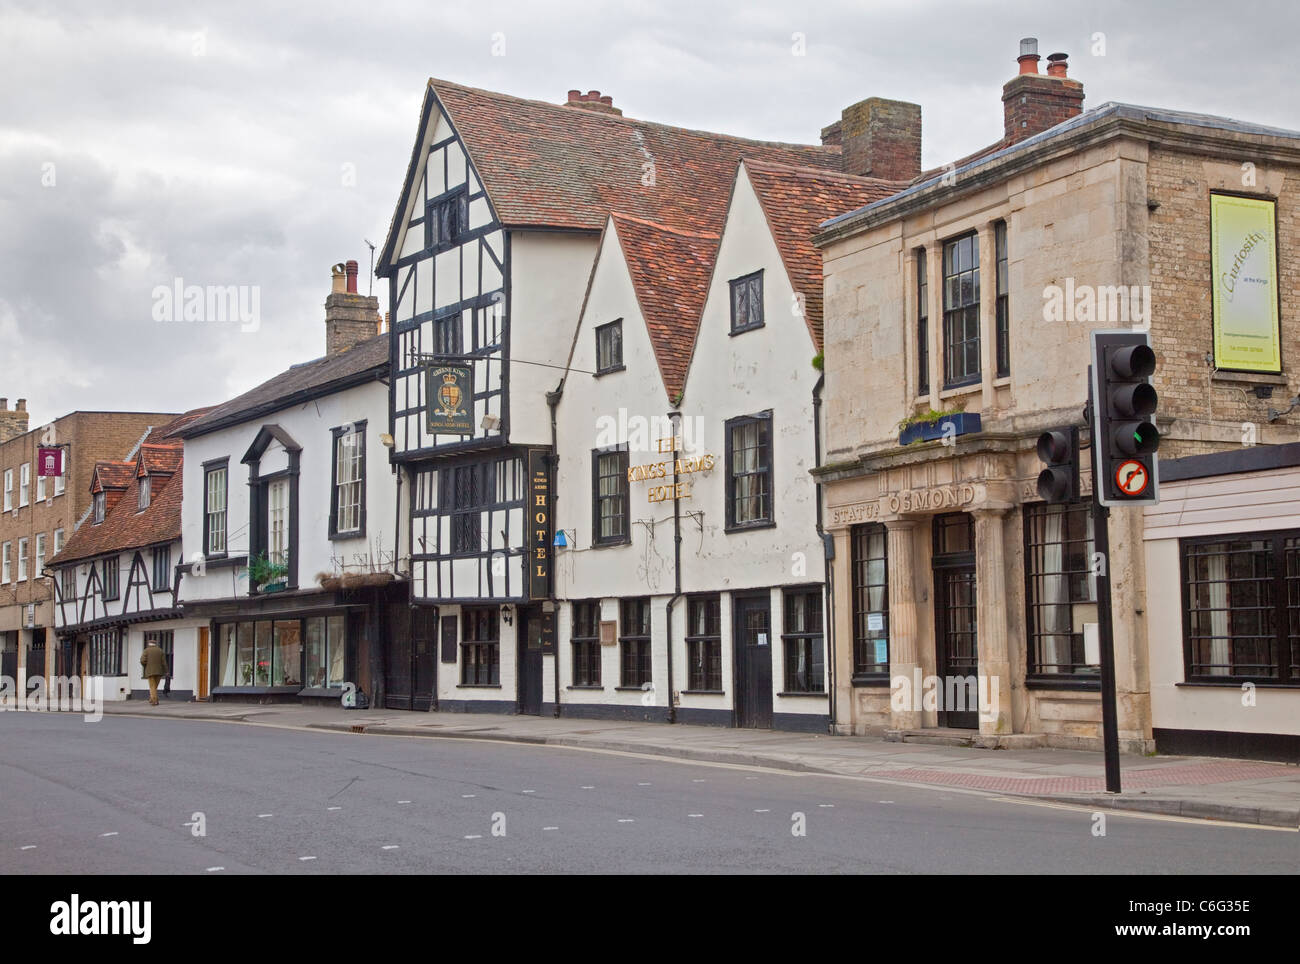 The Kings Head Hotel and Historical Buildings in St John's Road, Salisbury, Wiltshire, England - Stock Image